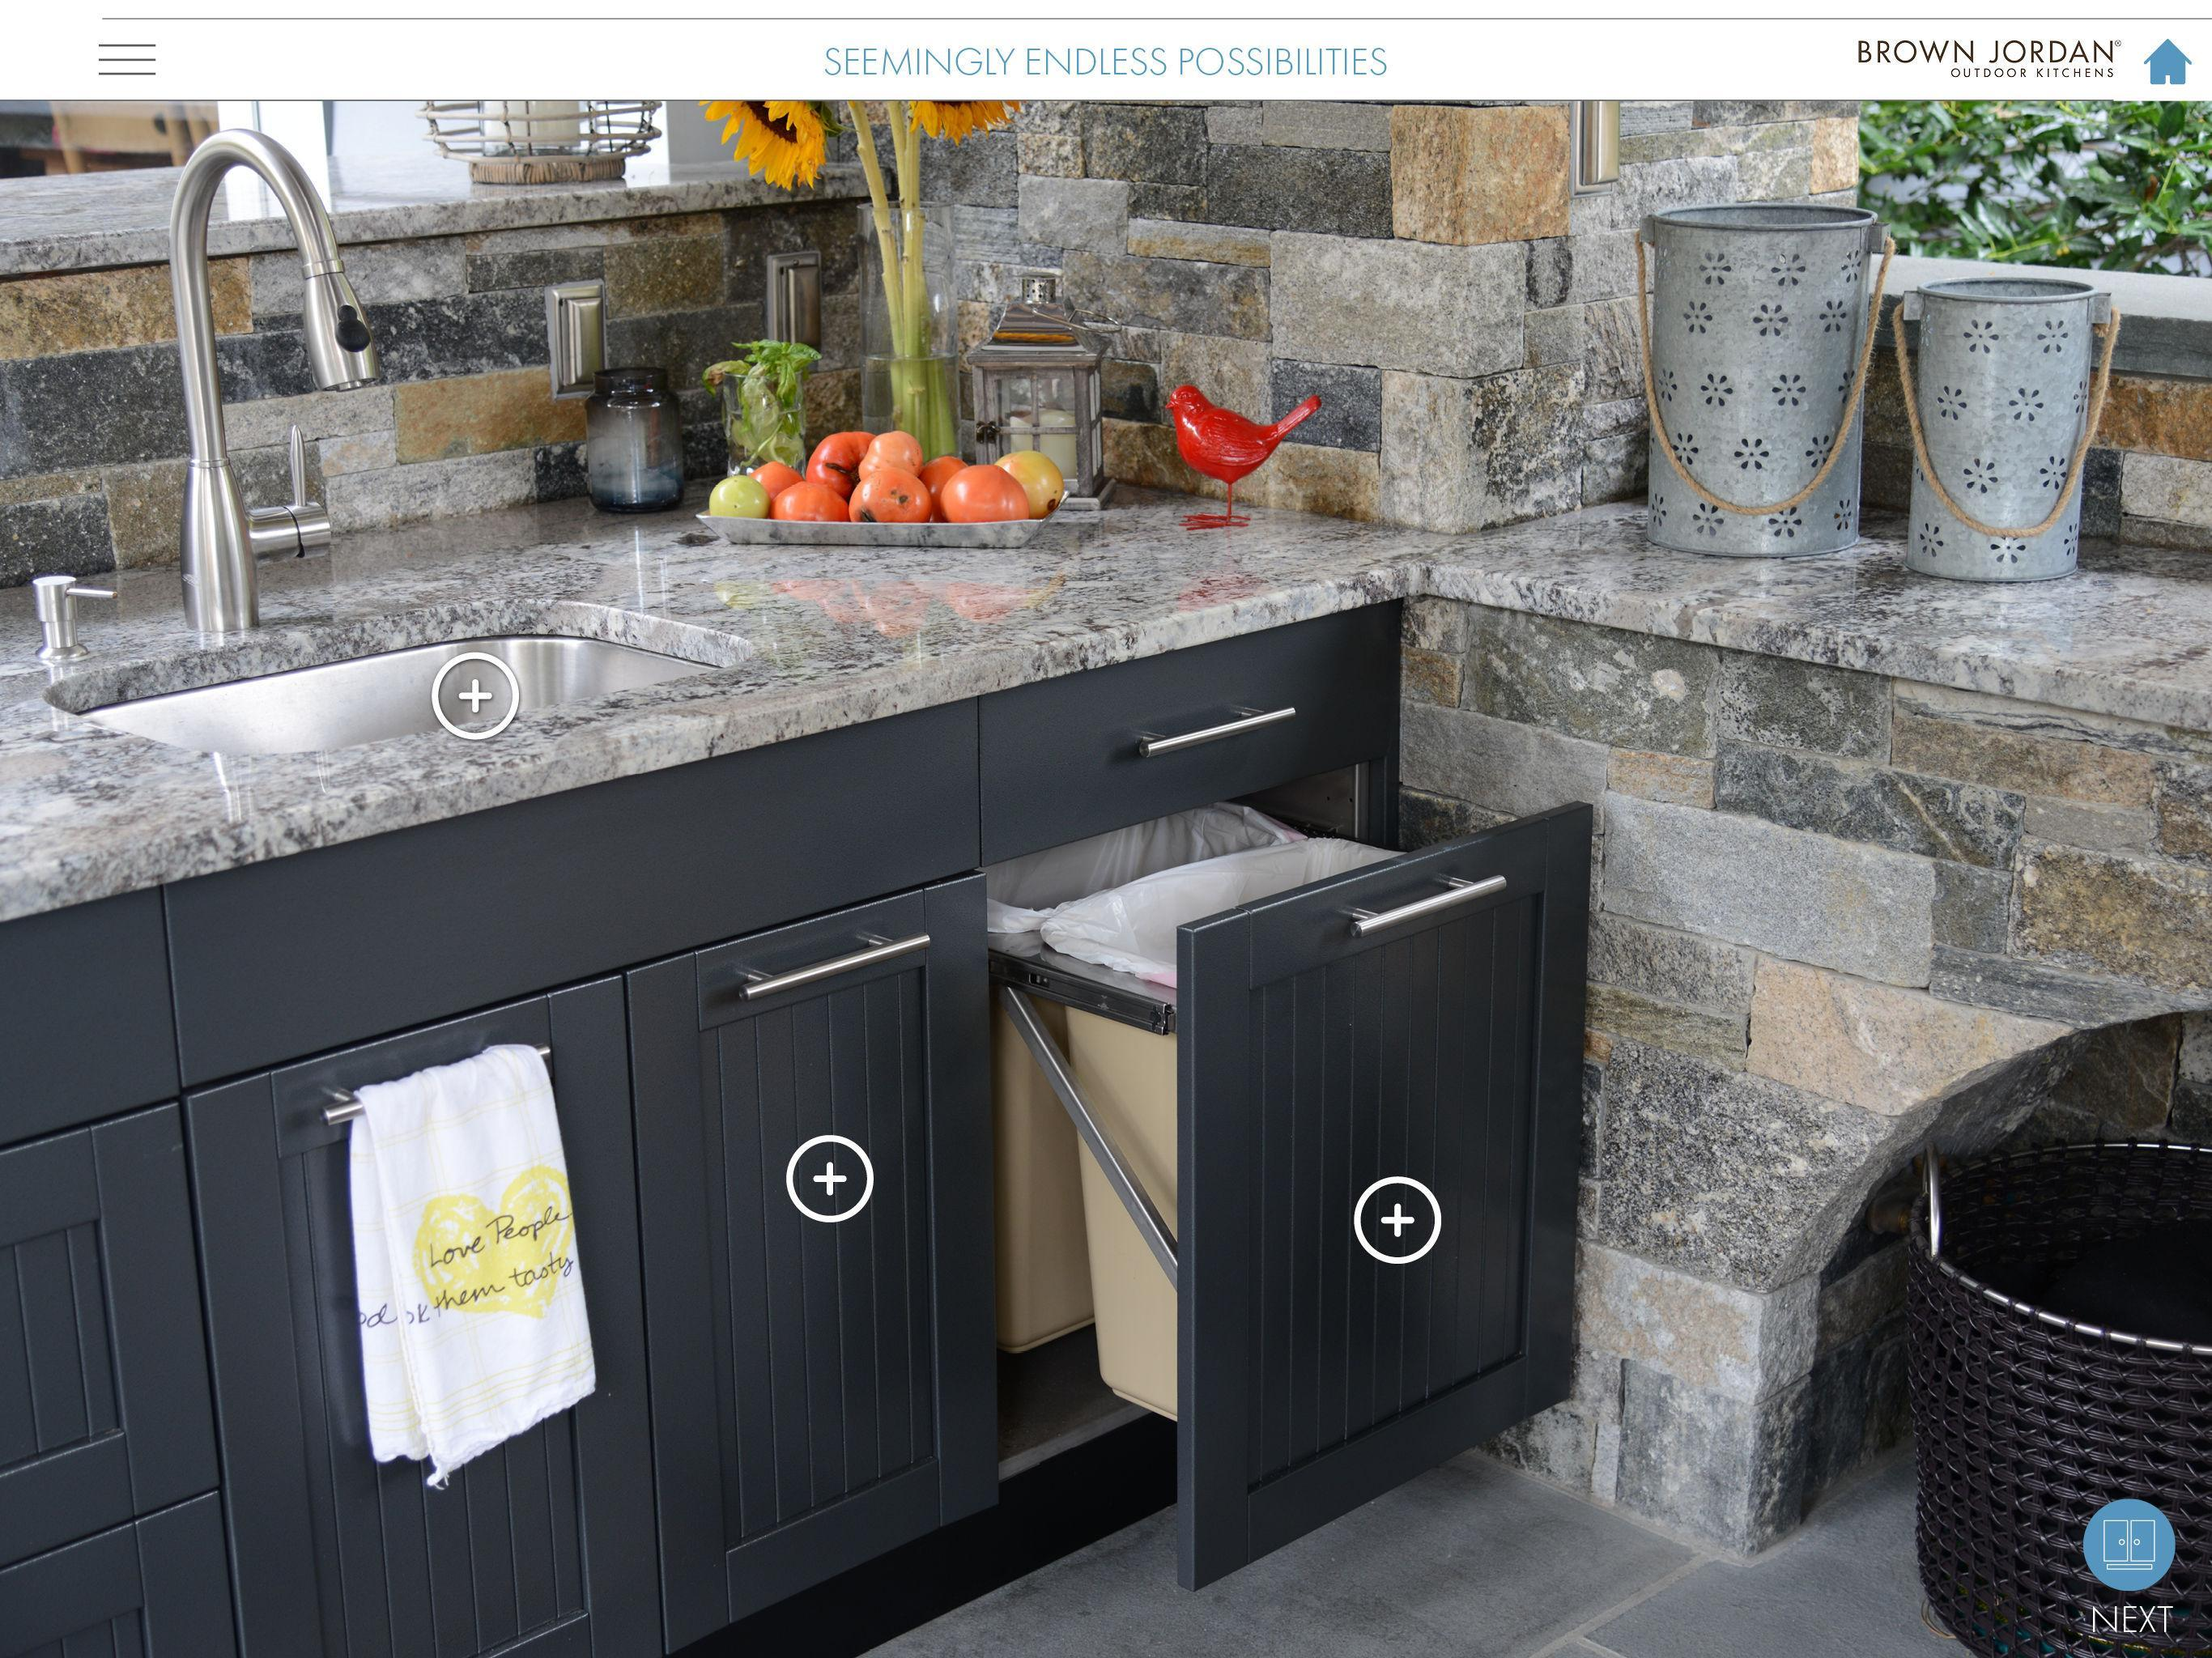 Brown Jordan Outdoor Kitchens for Android - APK Download